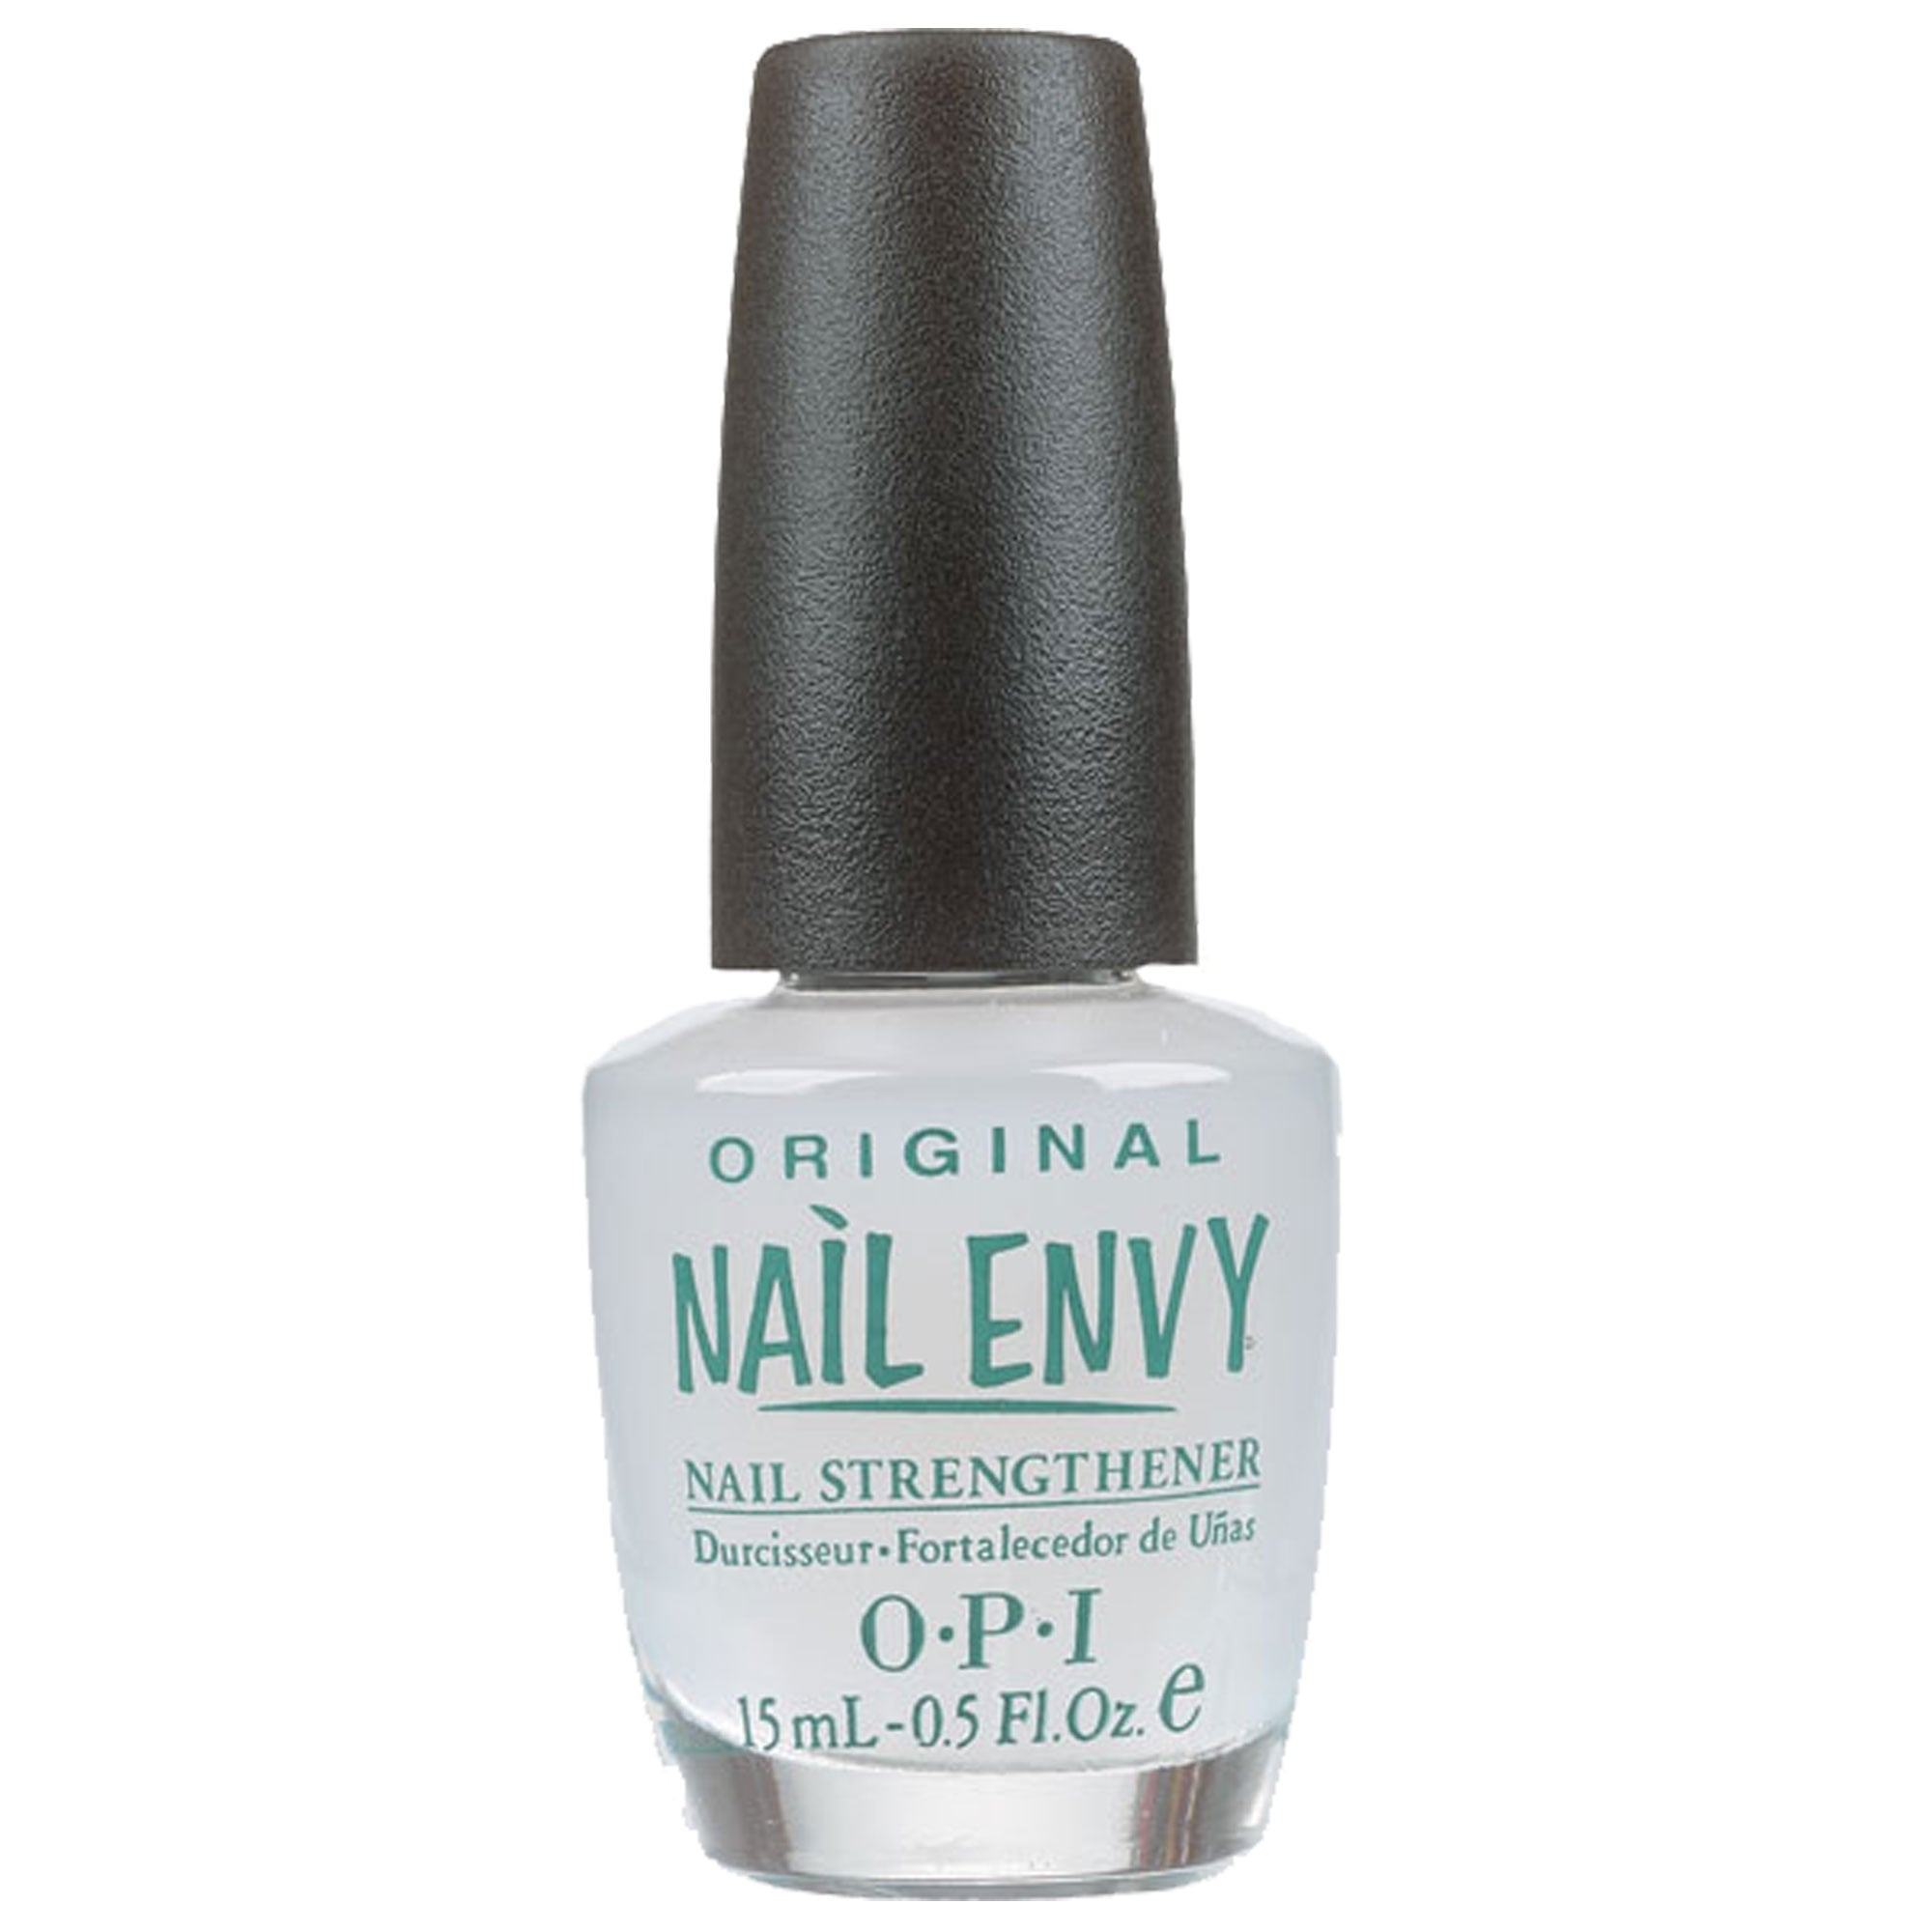 OPI Nail Strengthener Nail Envy Original Formula 15mL | Quality UK